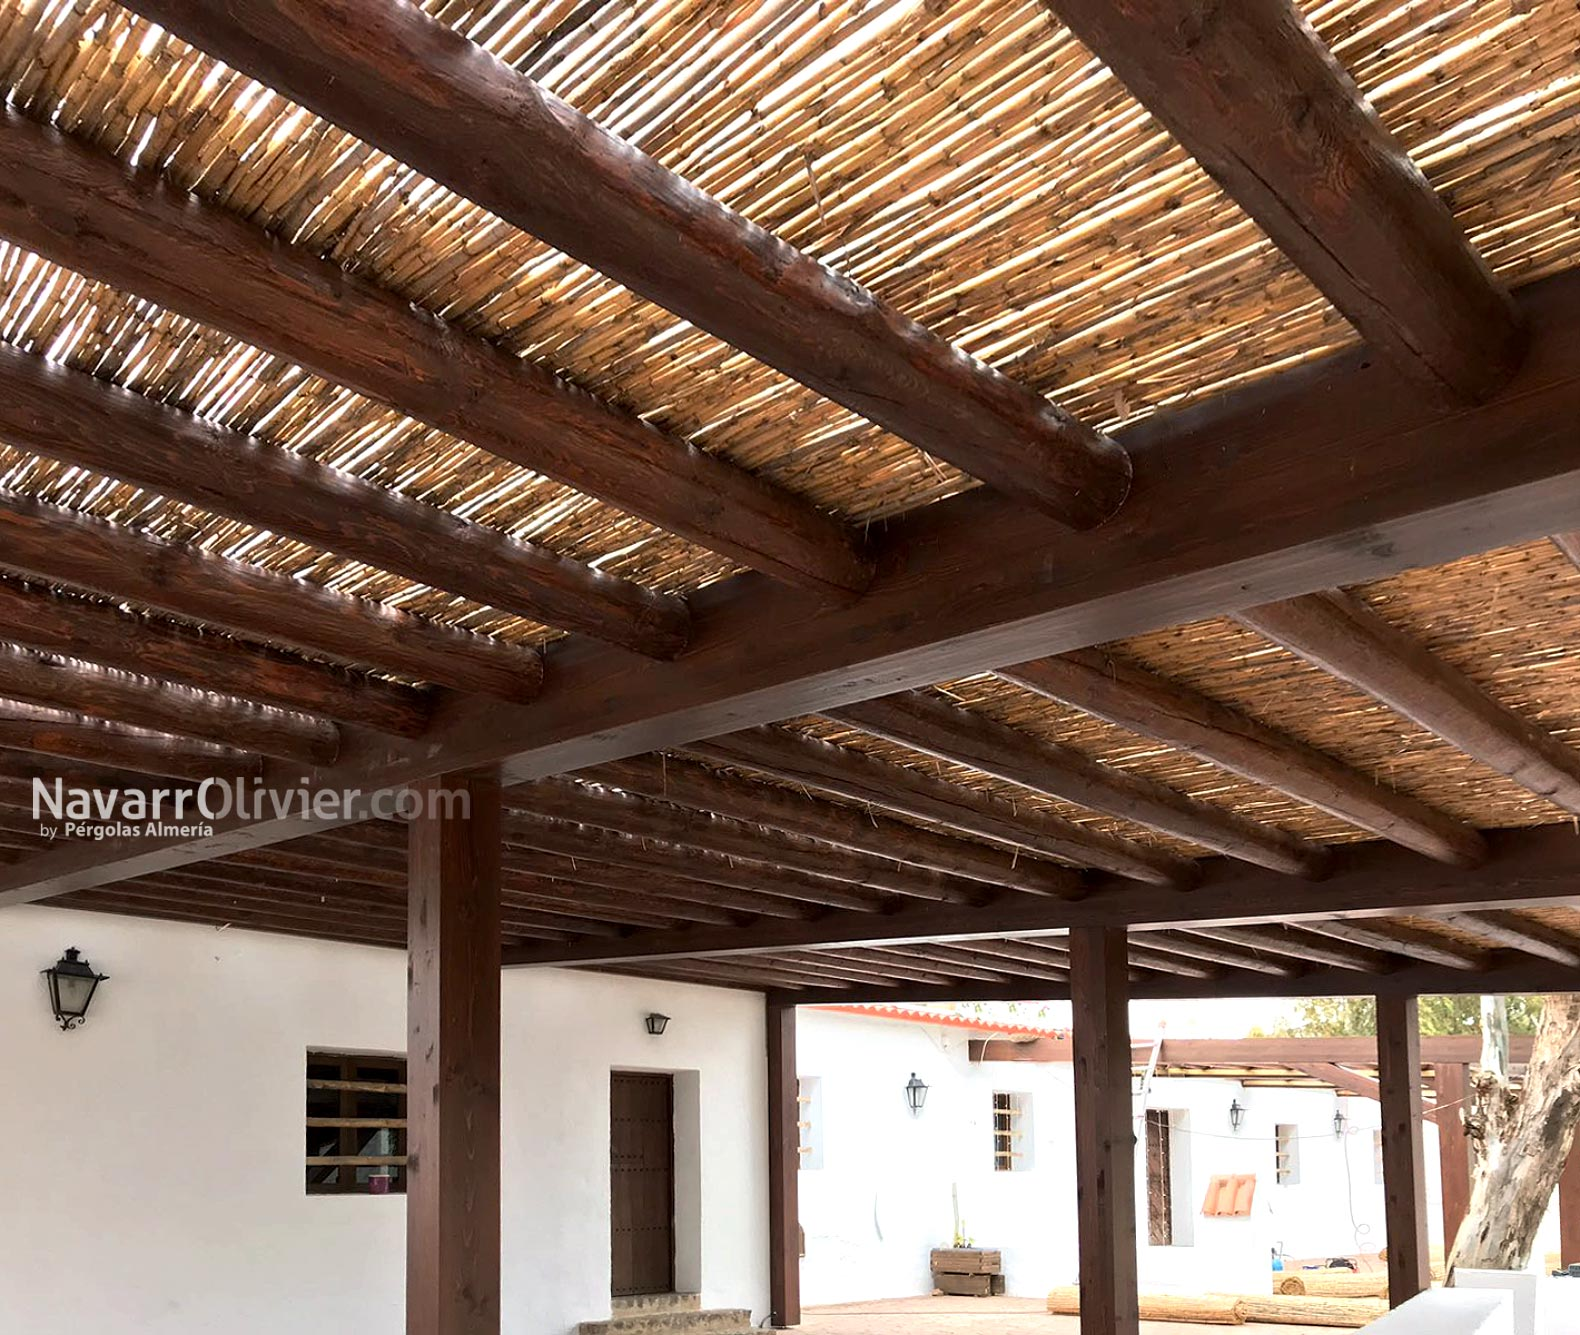 Pergola natural en playa Genoveses